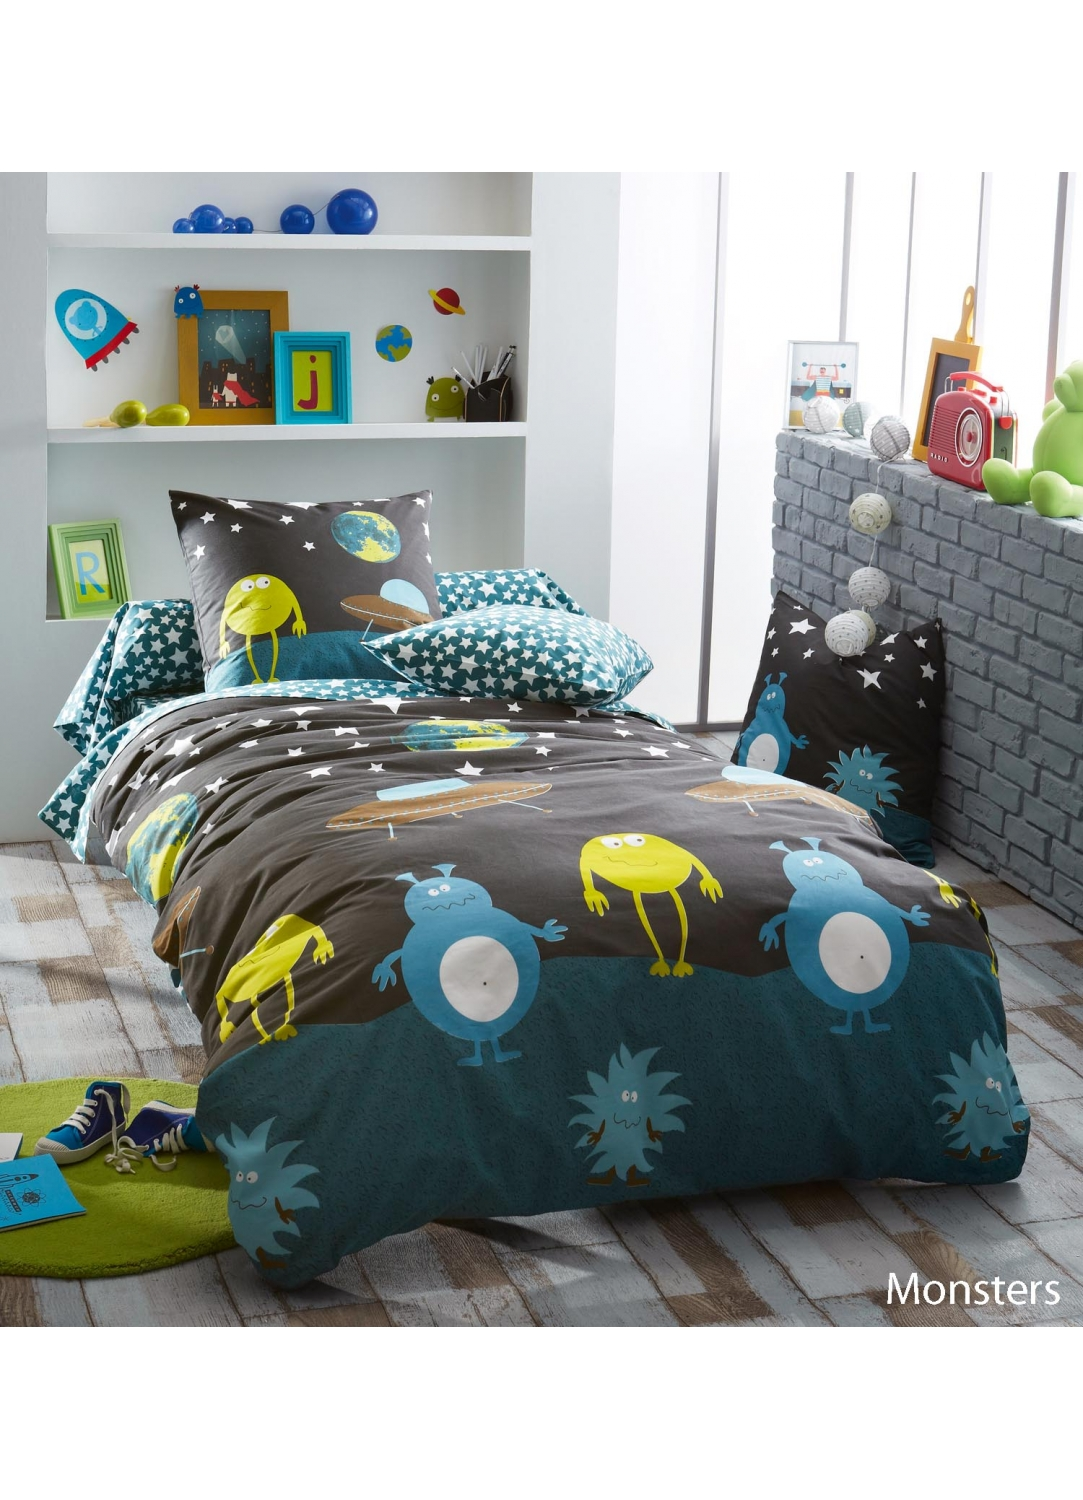 taie d oreiller monsters imprim s monstres bleu homemaison vente en ligne taies d. Black Bedroom Furniture Sets. Home Design Ideas